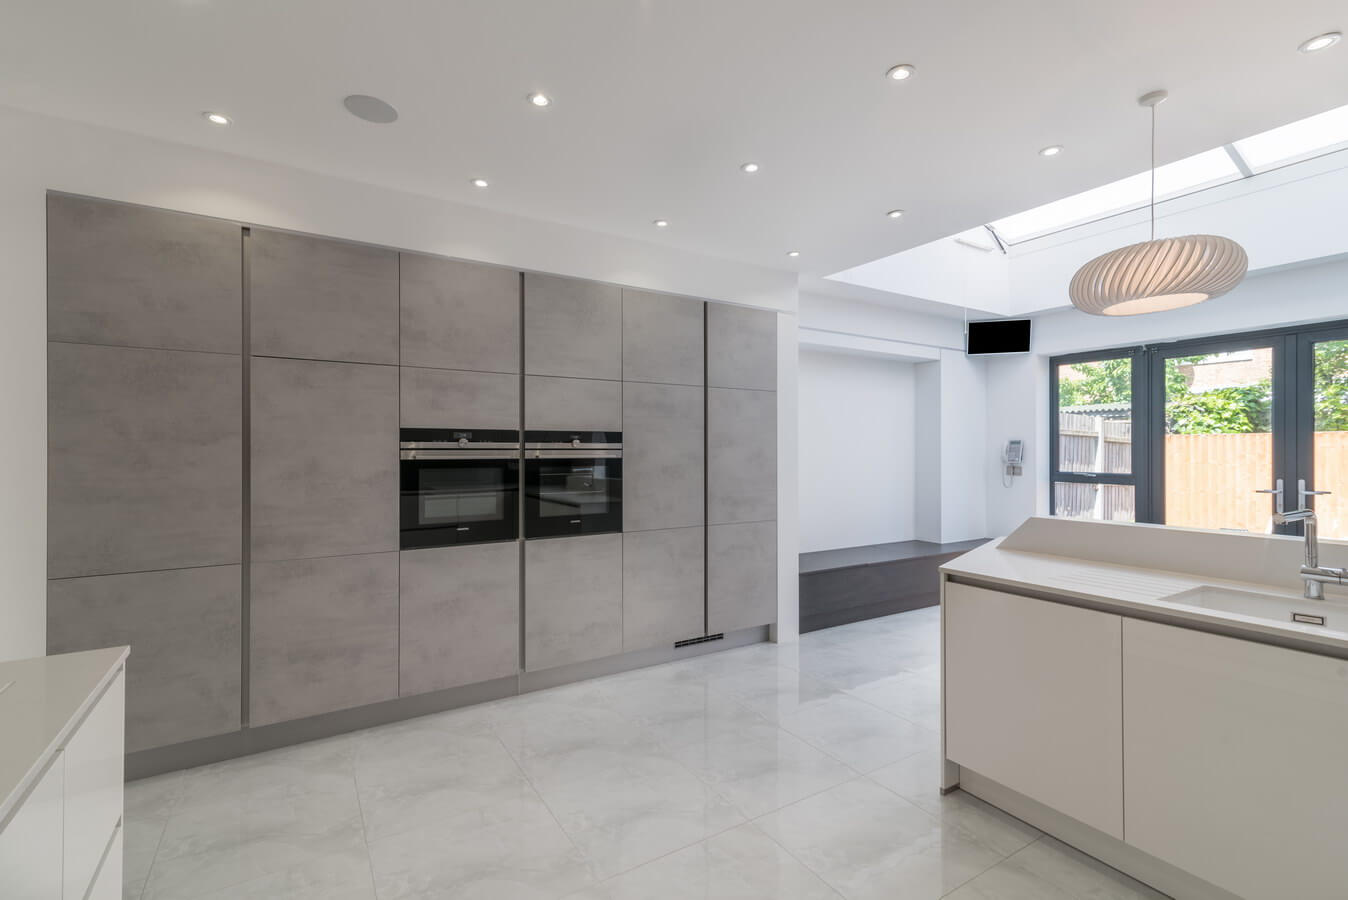 handleless-kosher-kitchen-units-nobilia.jpg